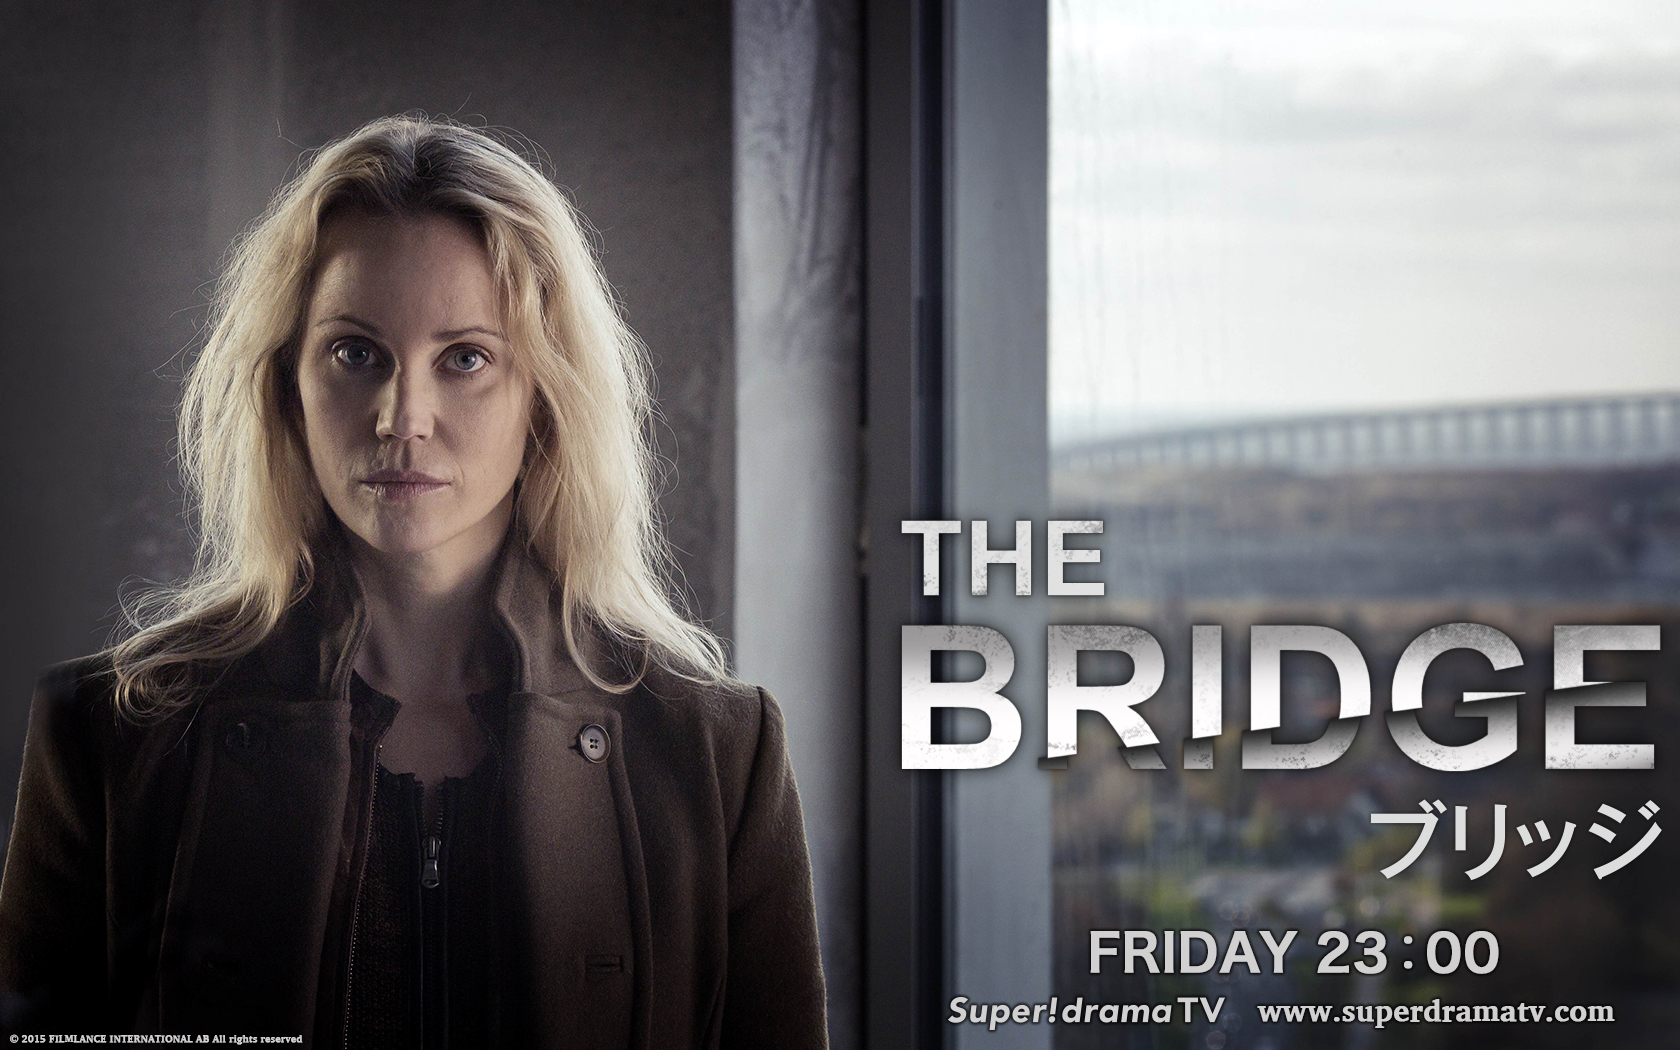 http://www.superdramatv.com/line/the_bridge/features/wallpaper/img/the_bridge_s3_1680_1050_02.jpg